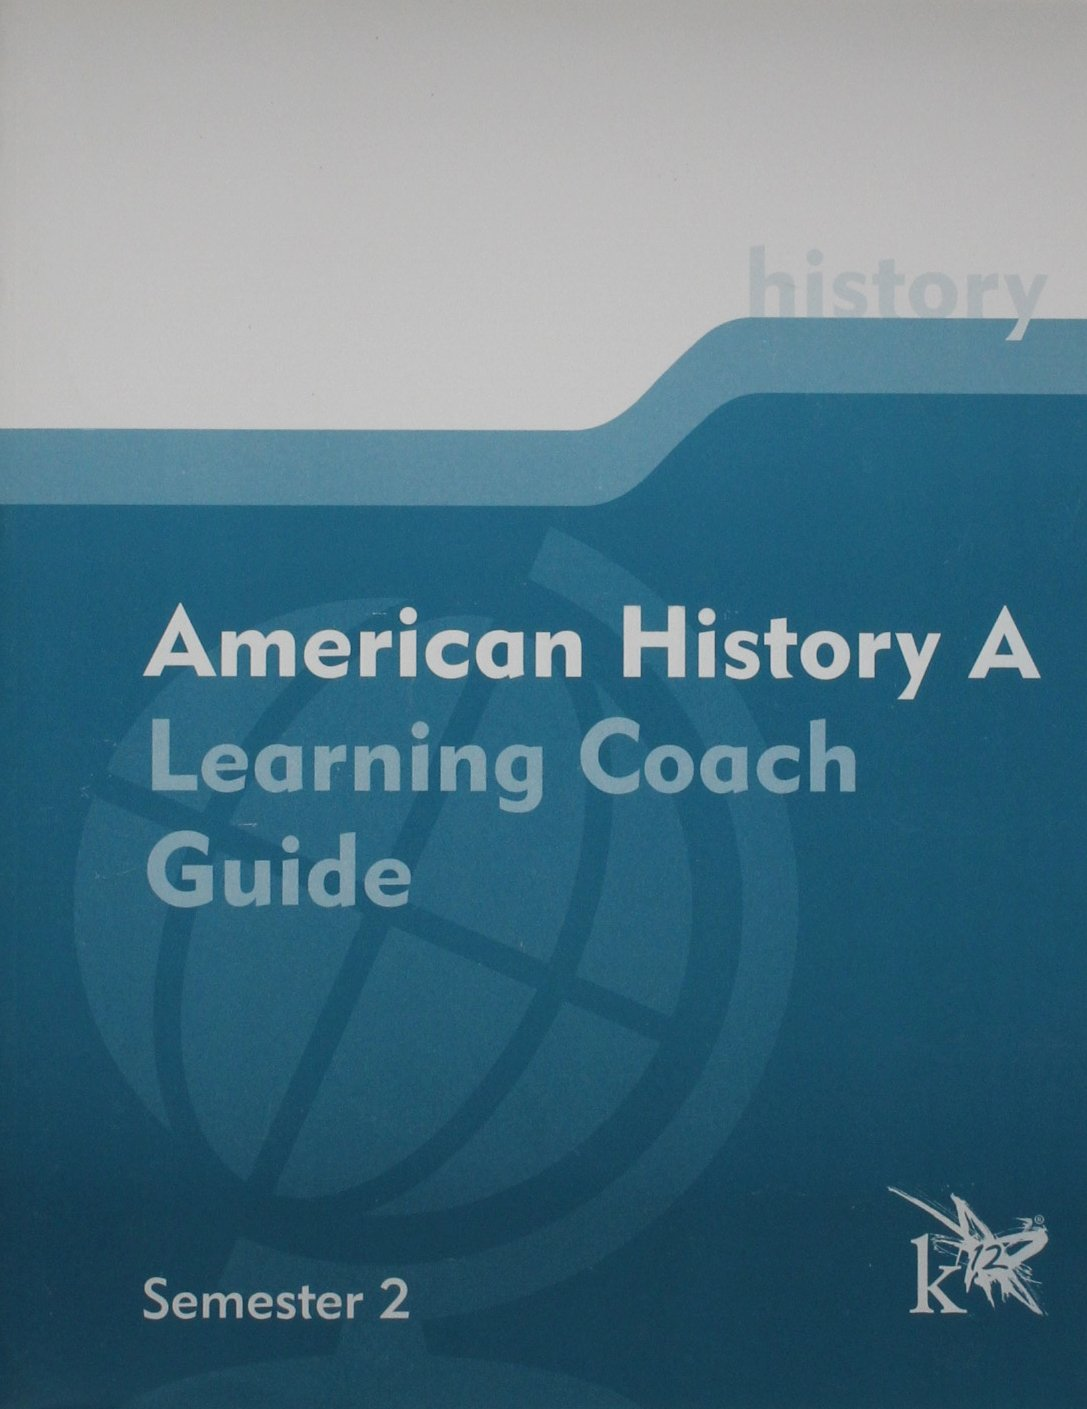 Download K12 American History A: Learning Coach Guide (Semester 2) Paperback pdf